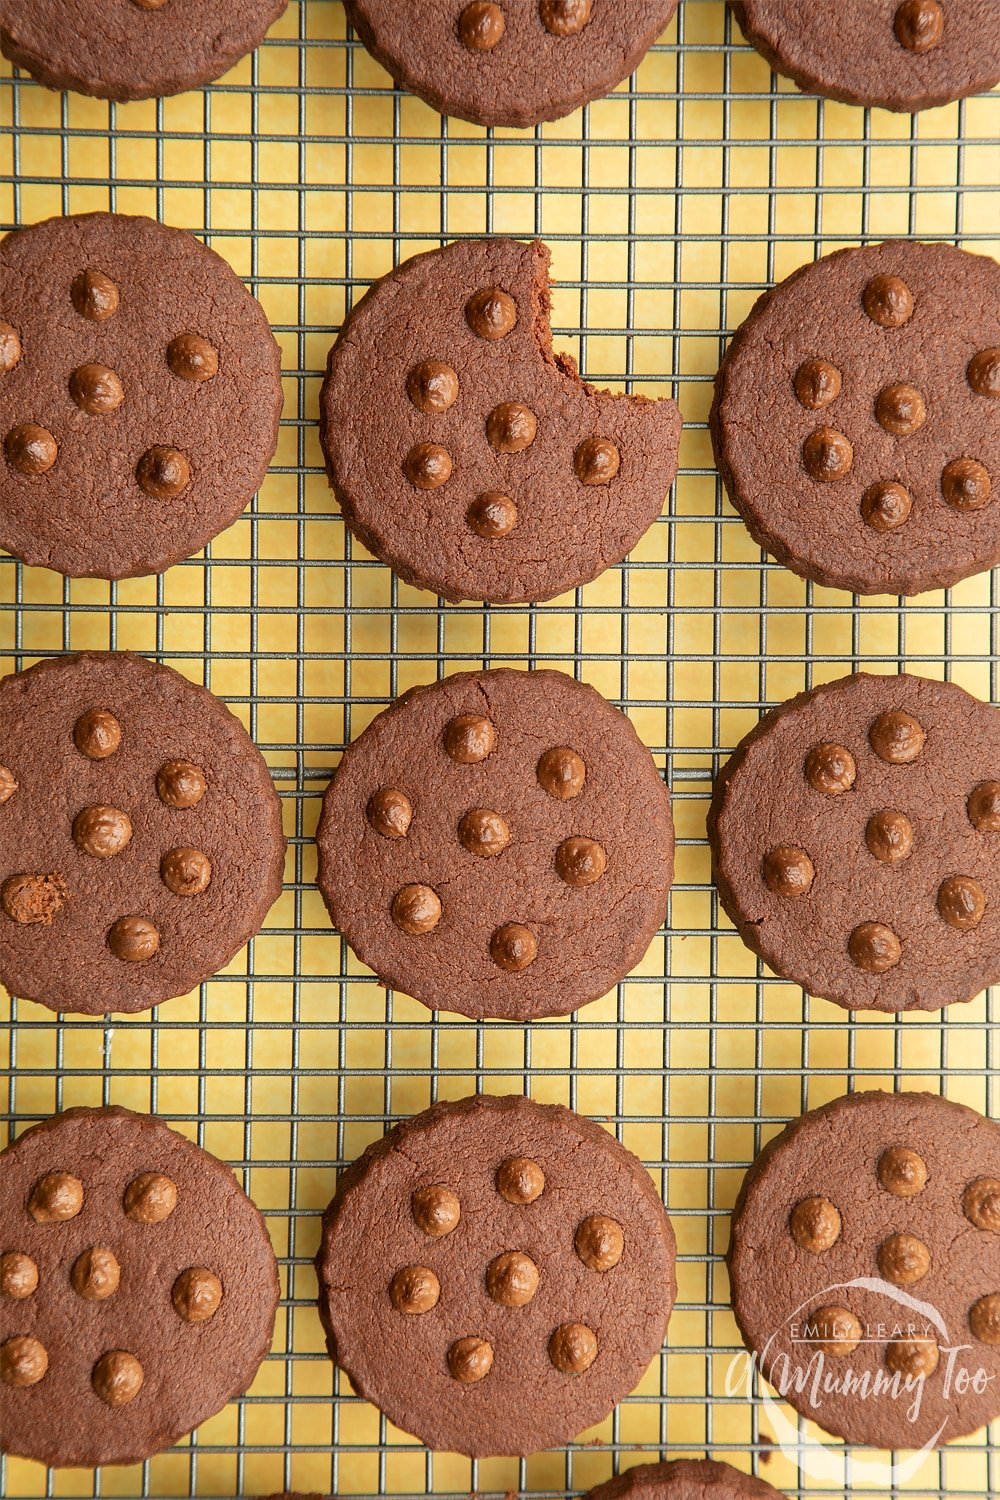 Close up shot of Chocolate shortbread cookies with chocolate chips cooling on a wire rack. One cookie has a bite out of it.